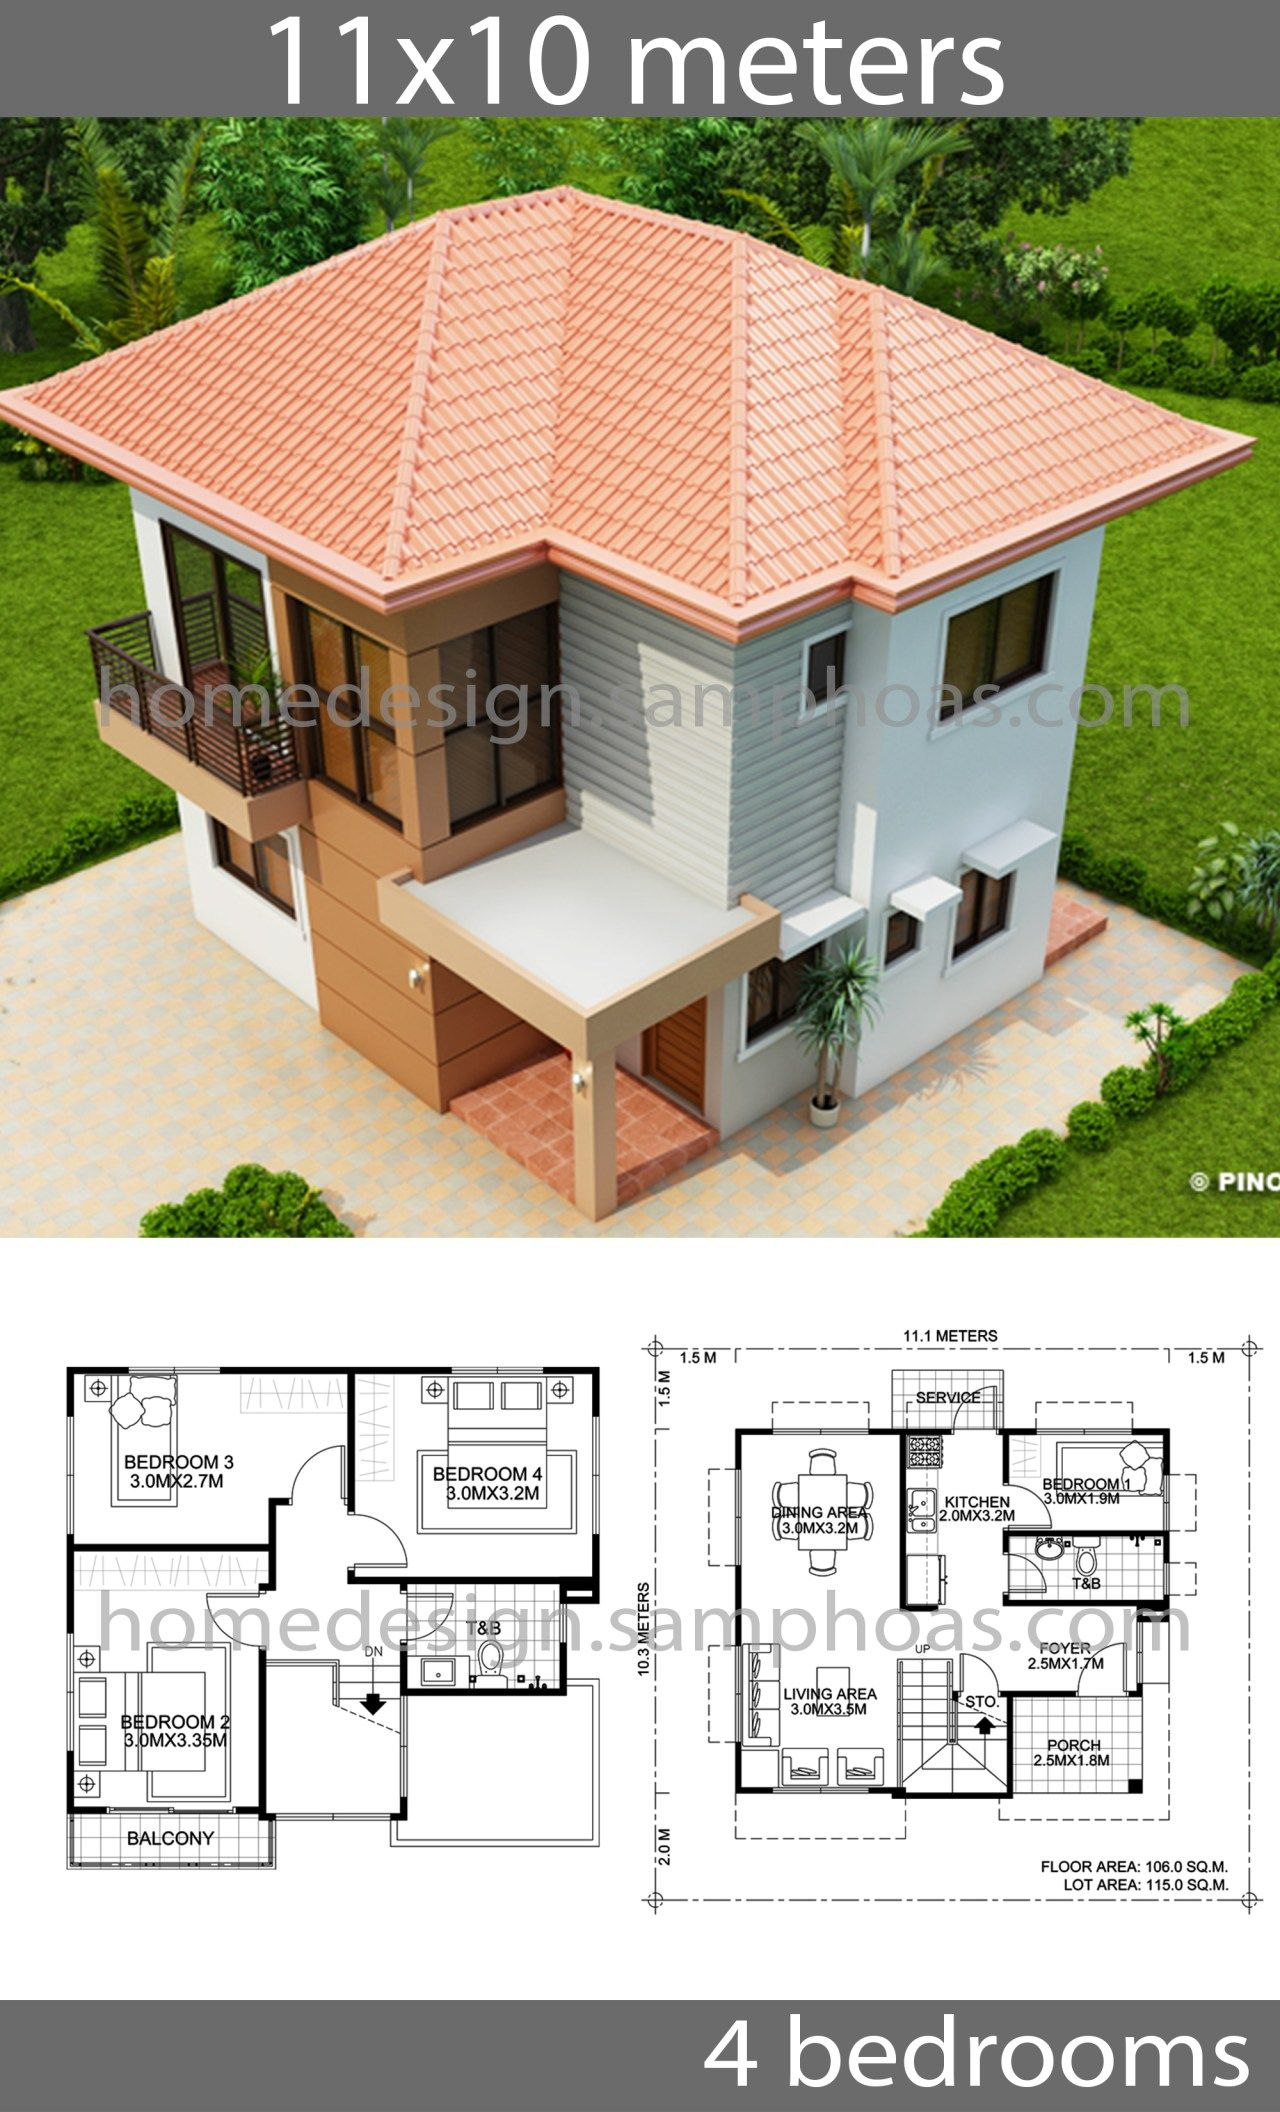 House Design Plans 10x11m With 4 Bedrooms Home Ideas Affordable House Plans Architecture Model House Beautiful House Plans